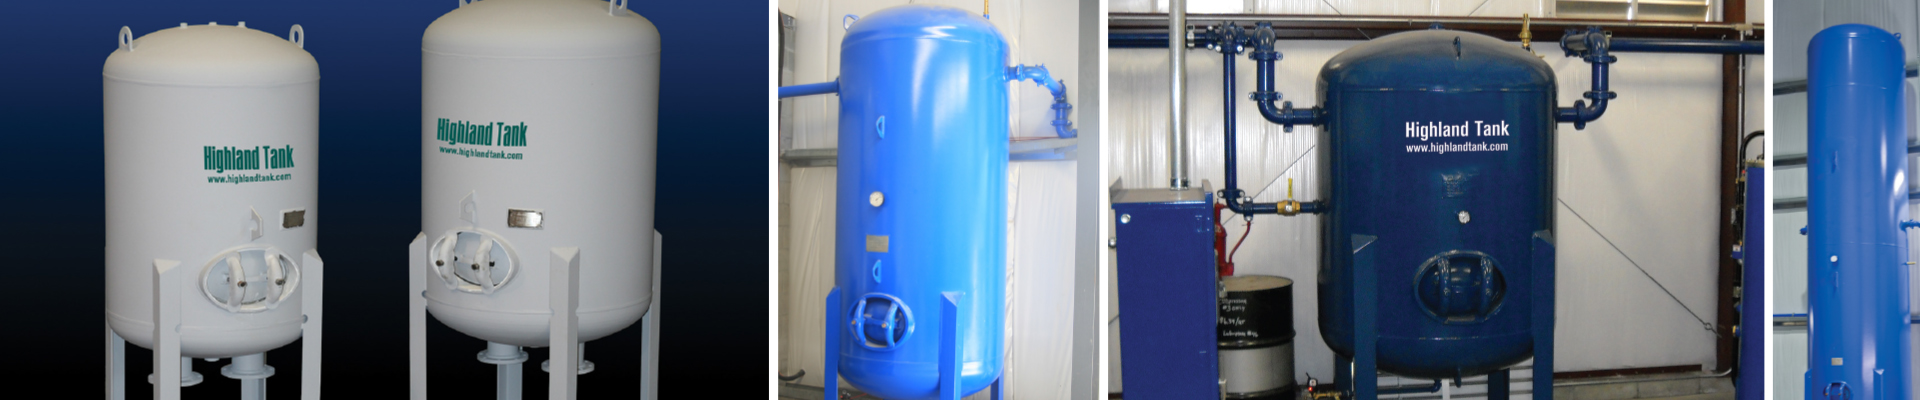 specialty asme pressure vessels - Highland Tank